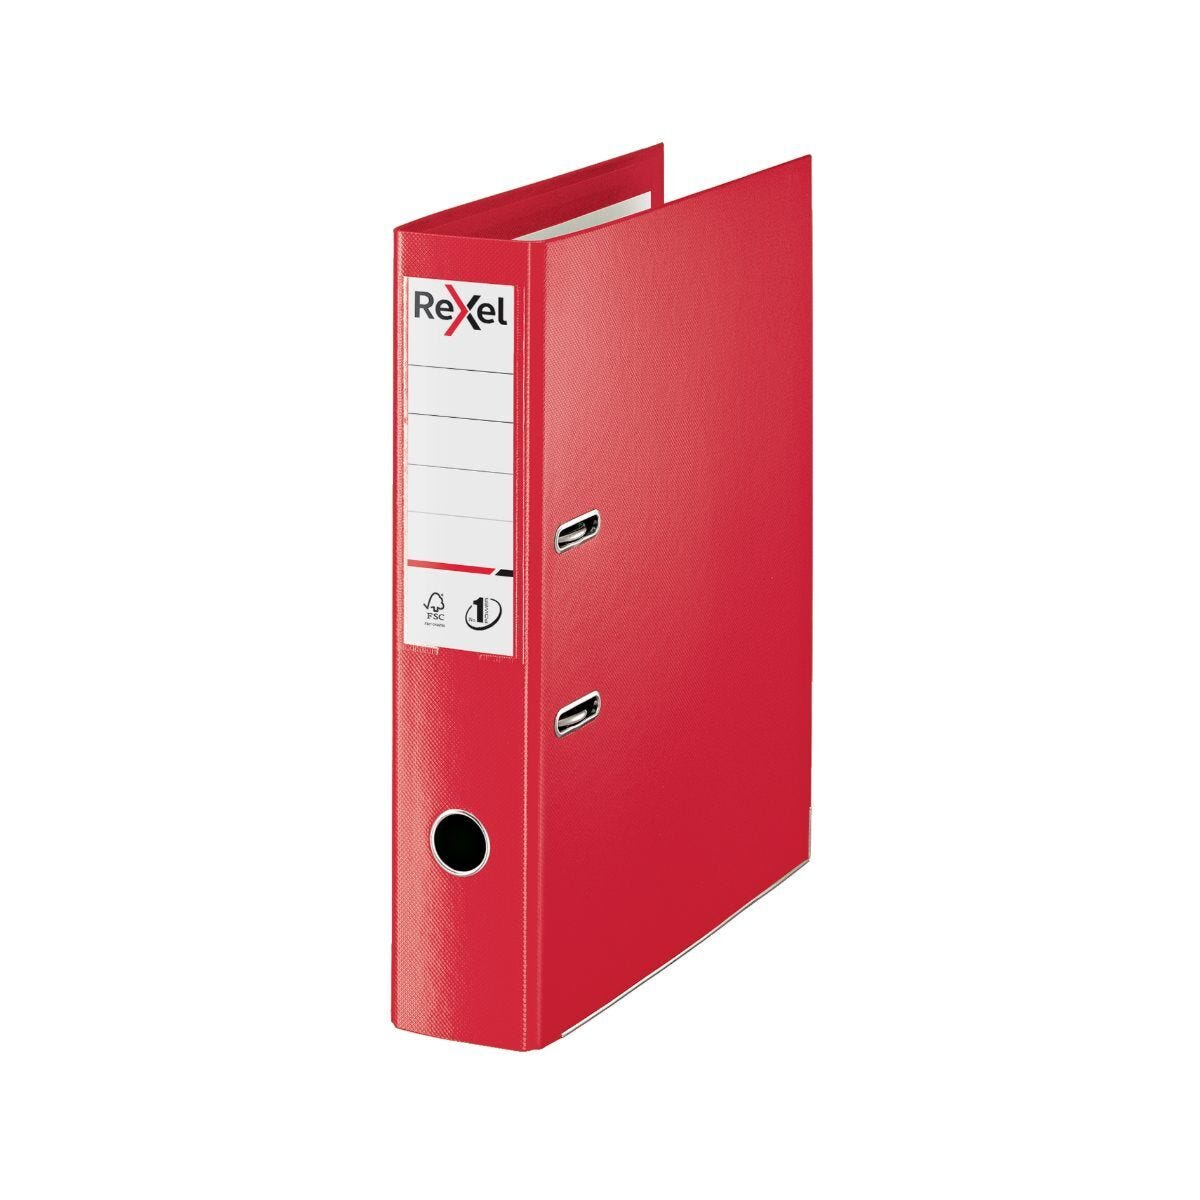 Rexel Choices Lever Arch File Foolscap PP 75mm Pack of 10 Red